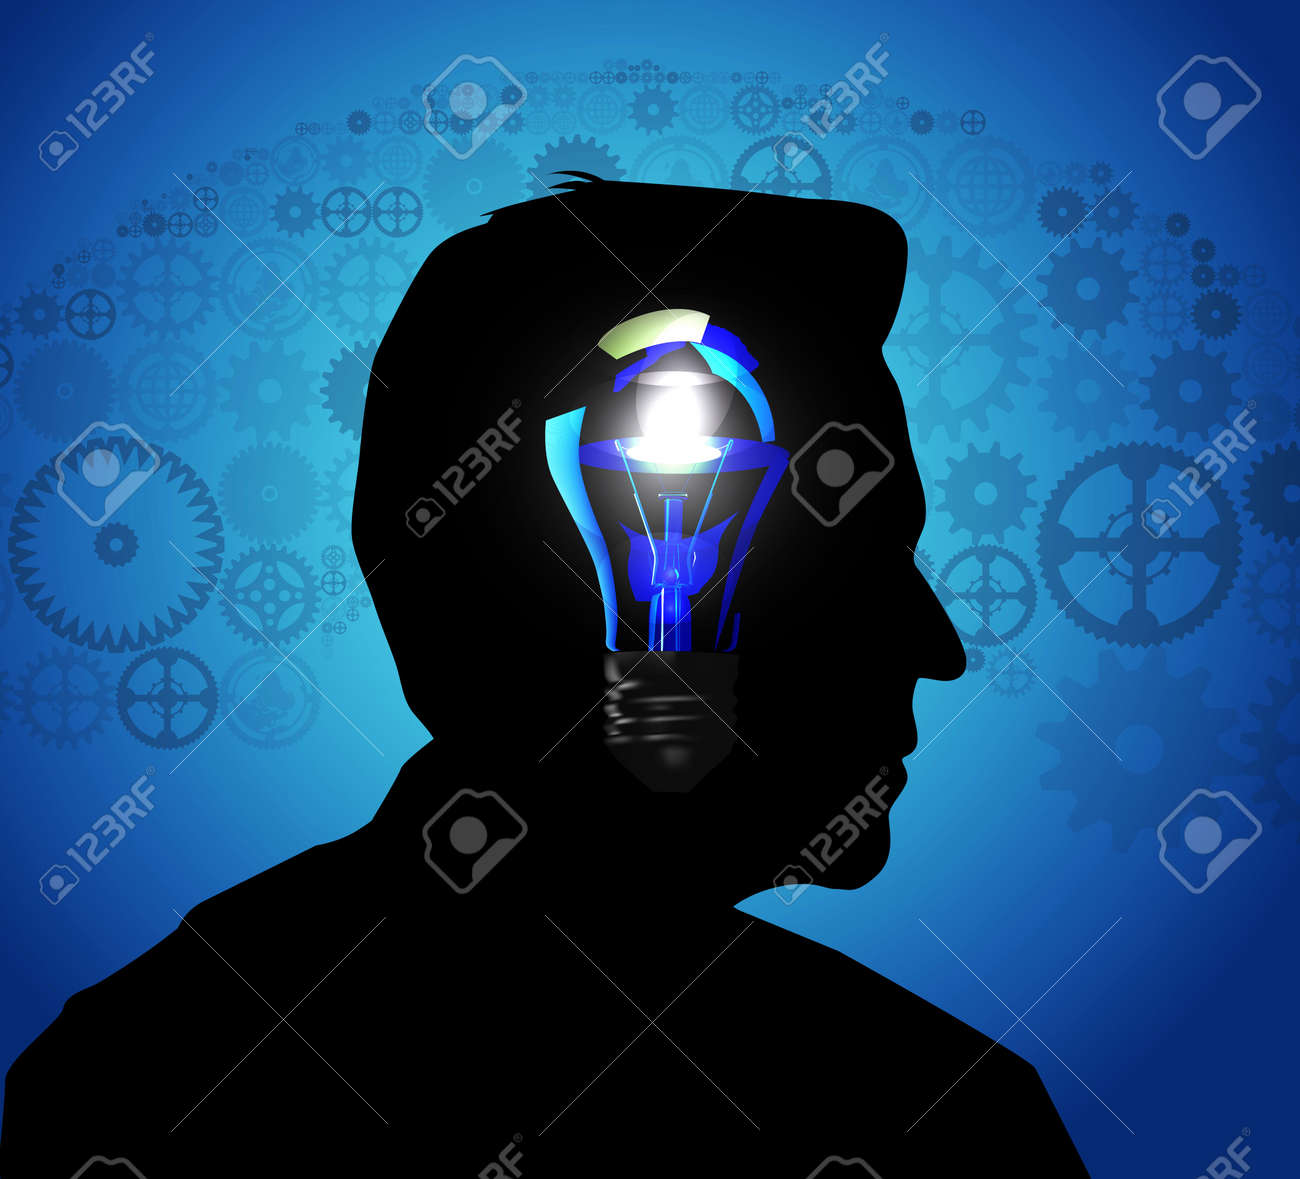 Silhouette of a man s head Stock Vector - 19095439